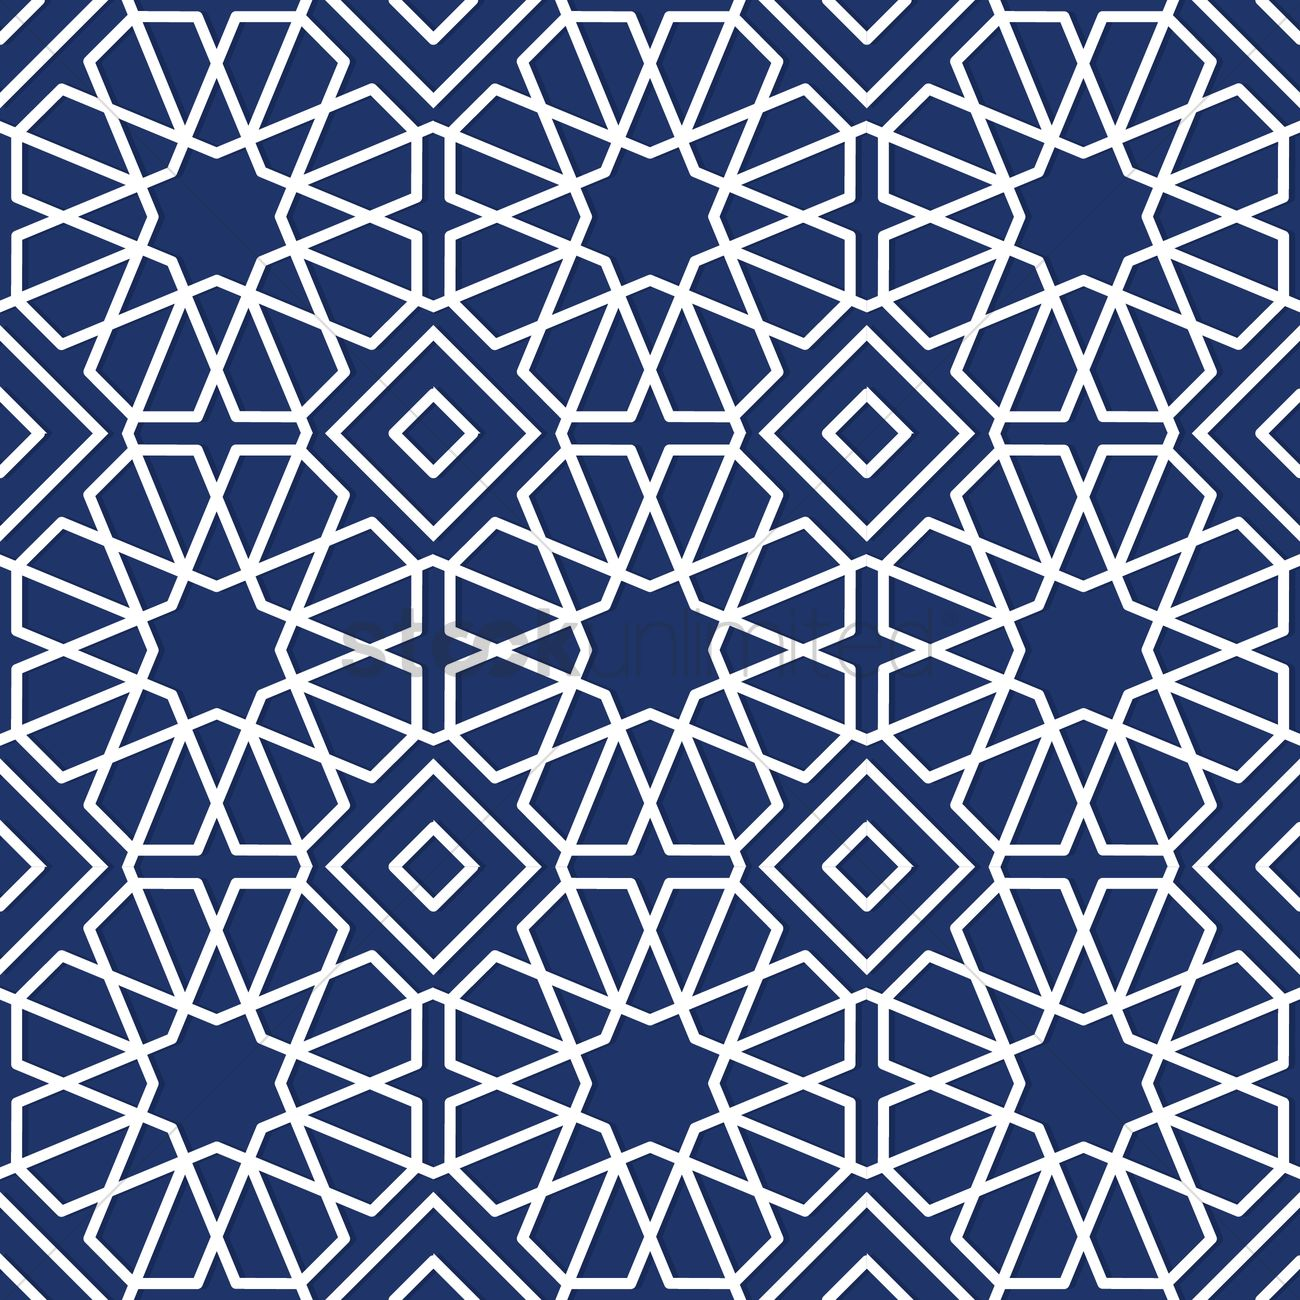 Islamic geometric designs images Geometric patterns